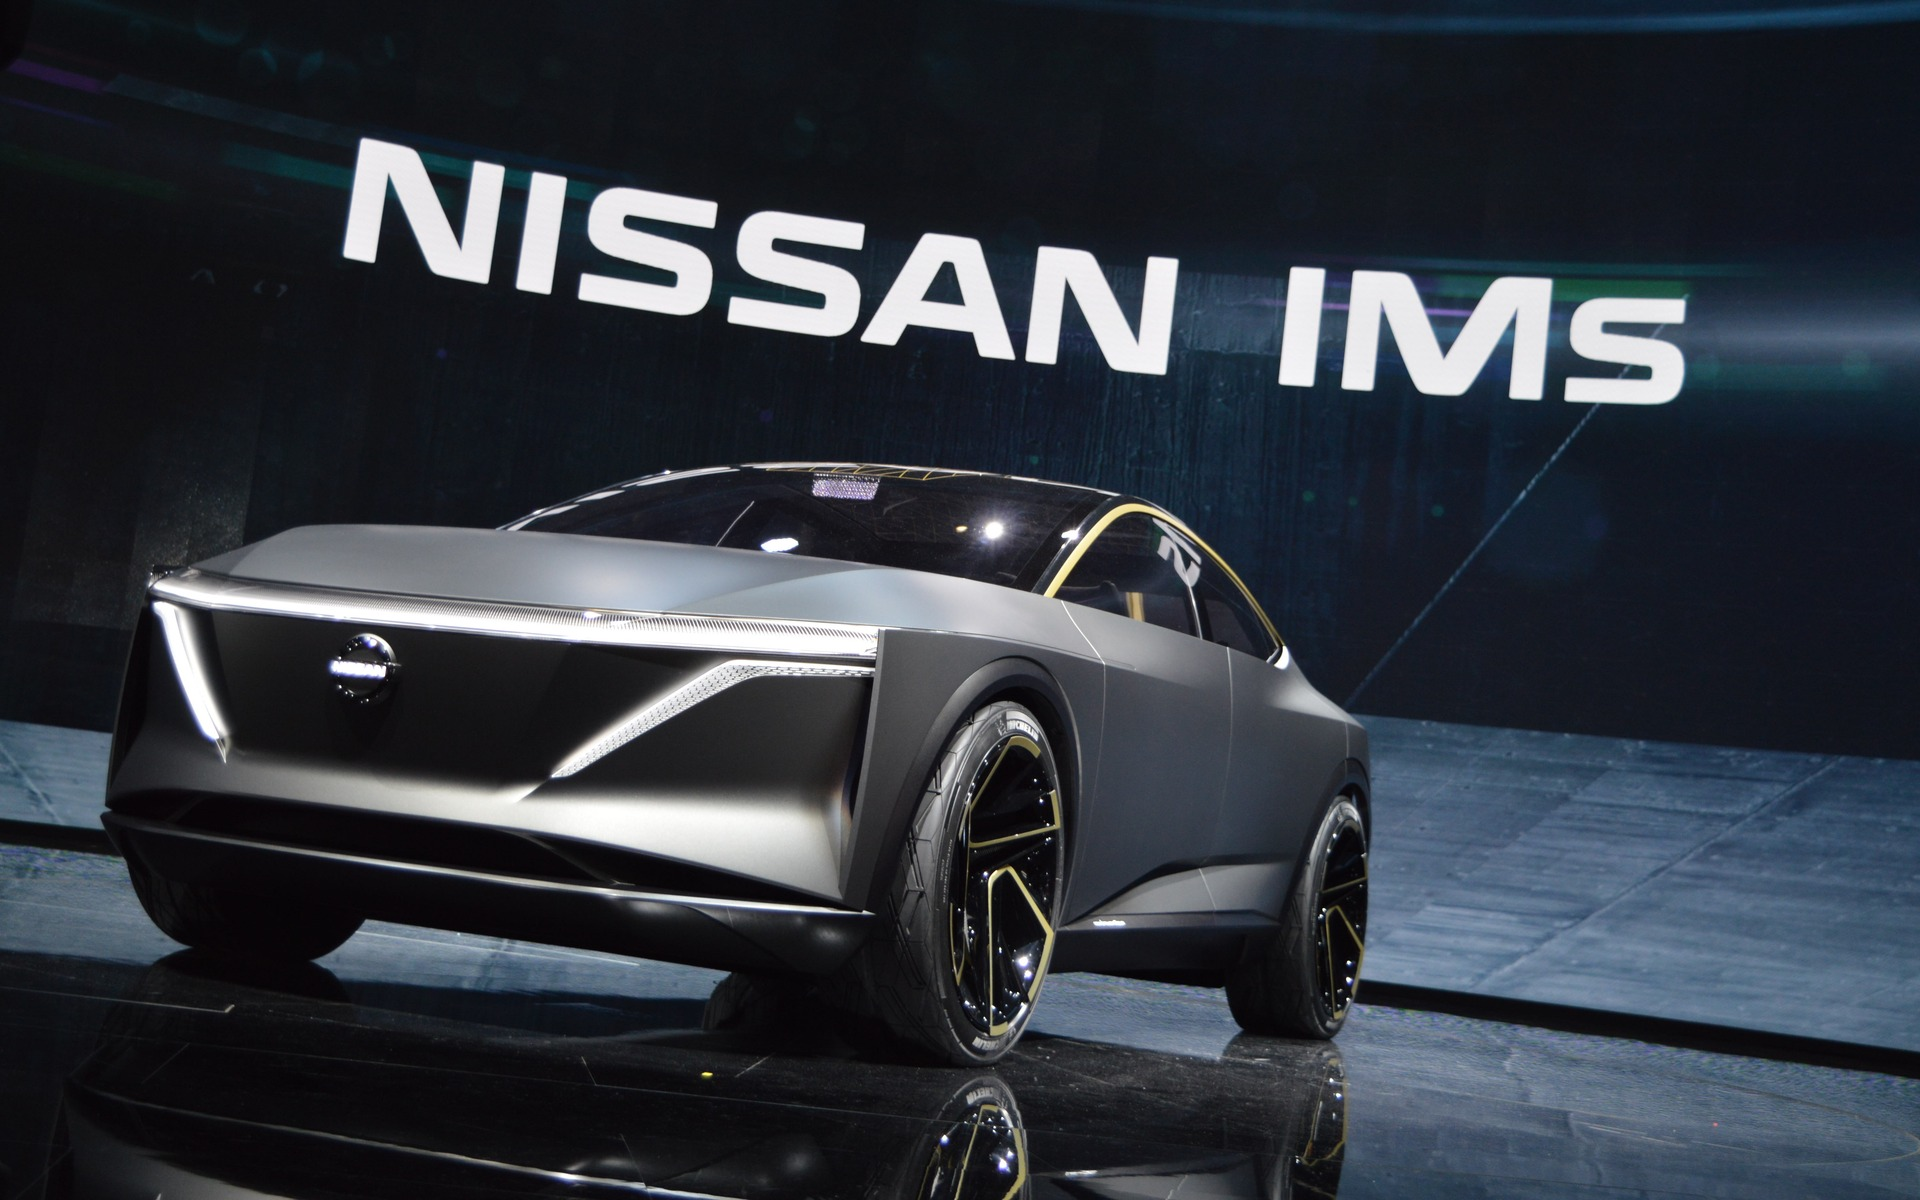 Nissan IMs Concept: a 483-Horsepower, Fully Electric Sedan - The Car